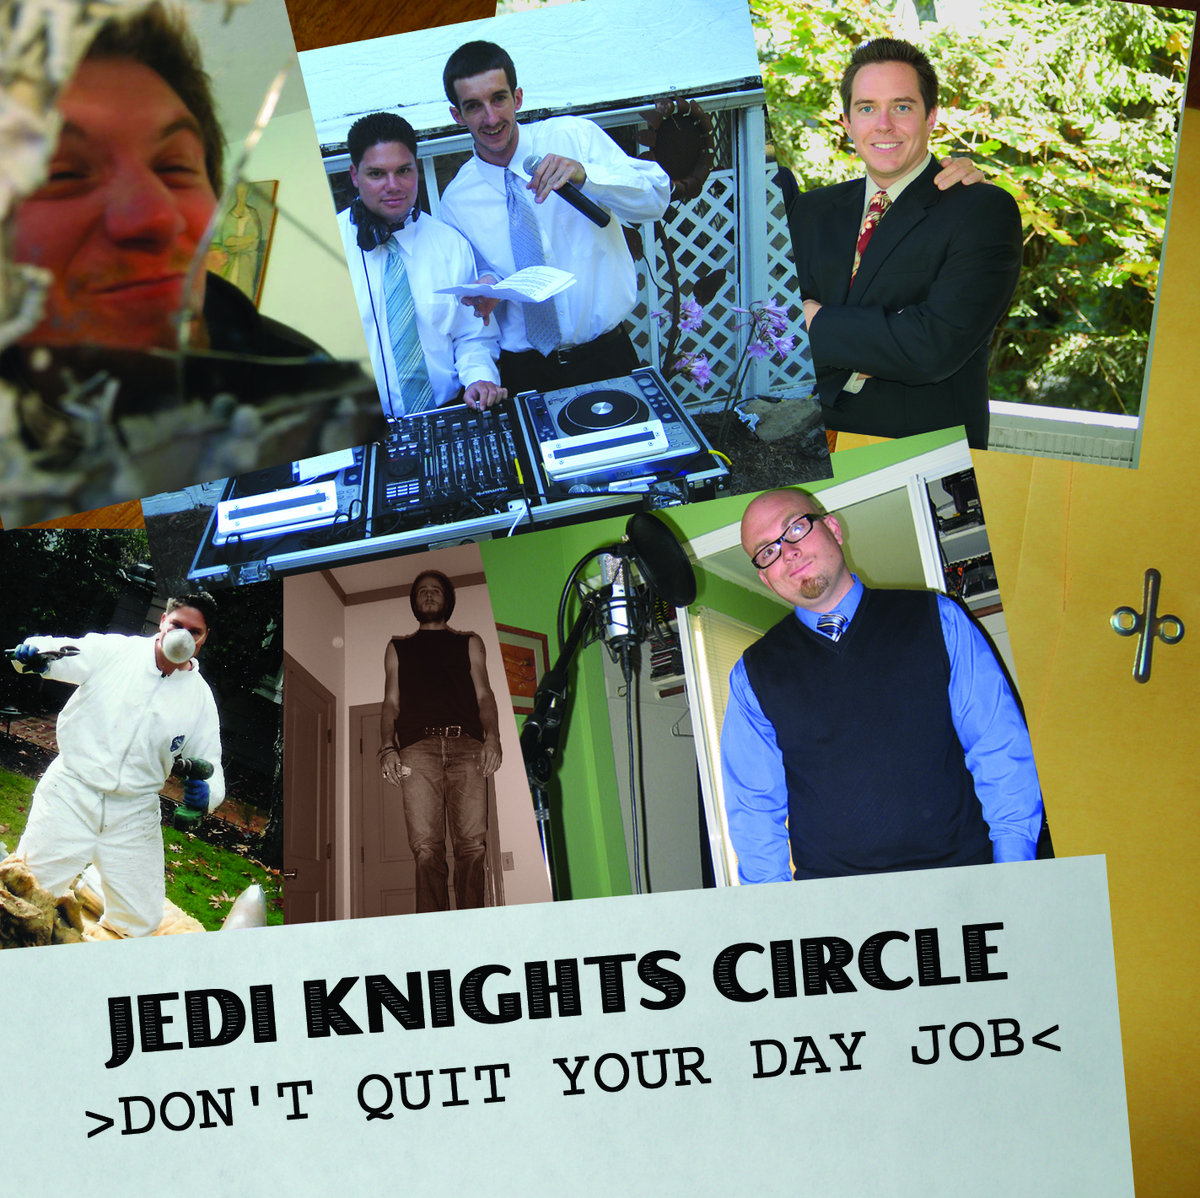 don t quit your day job jedi knights circle by jedi knights circle